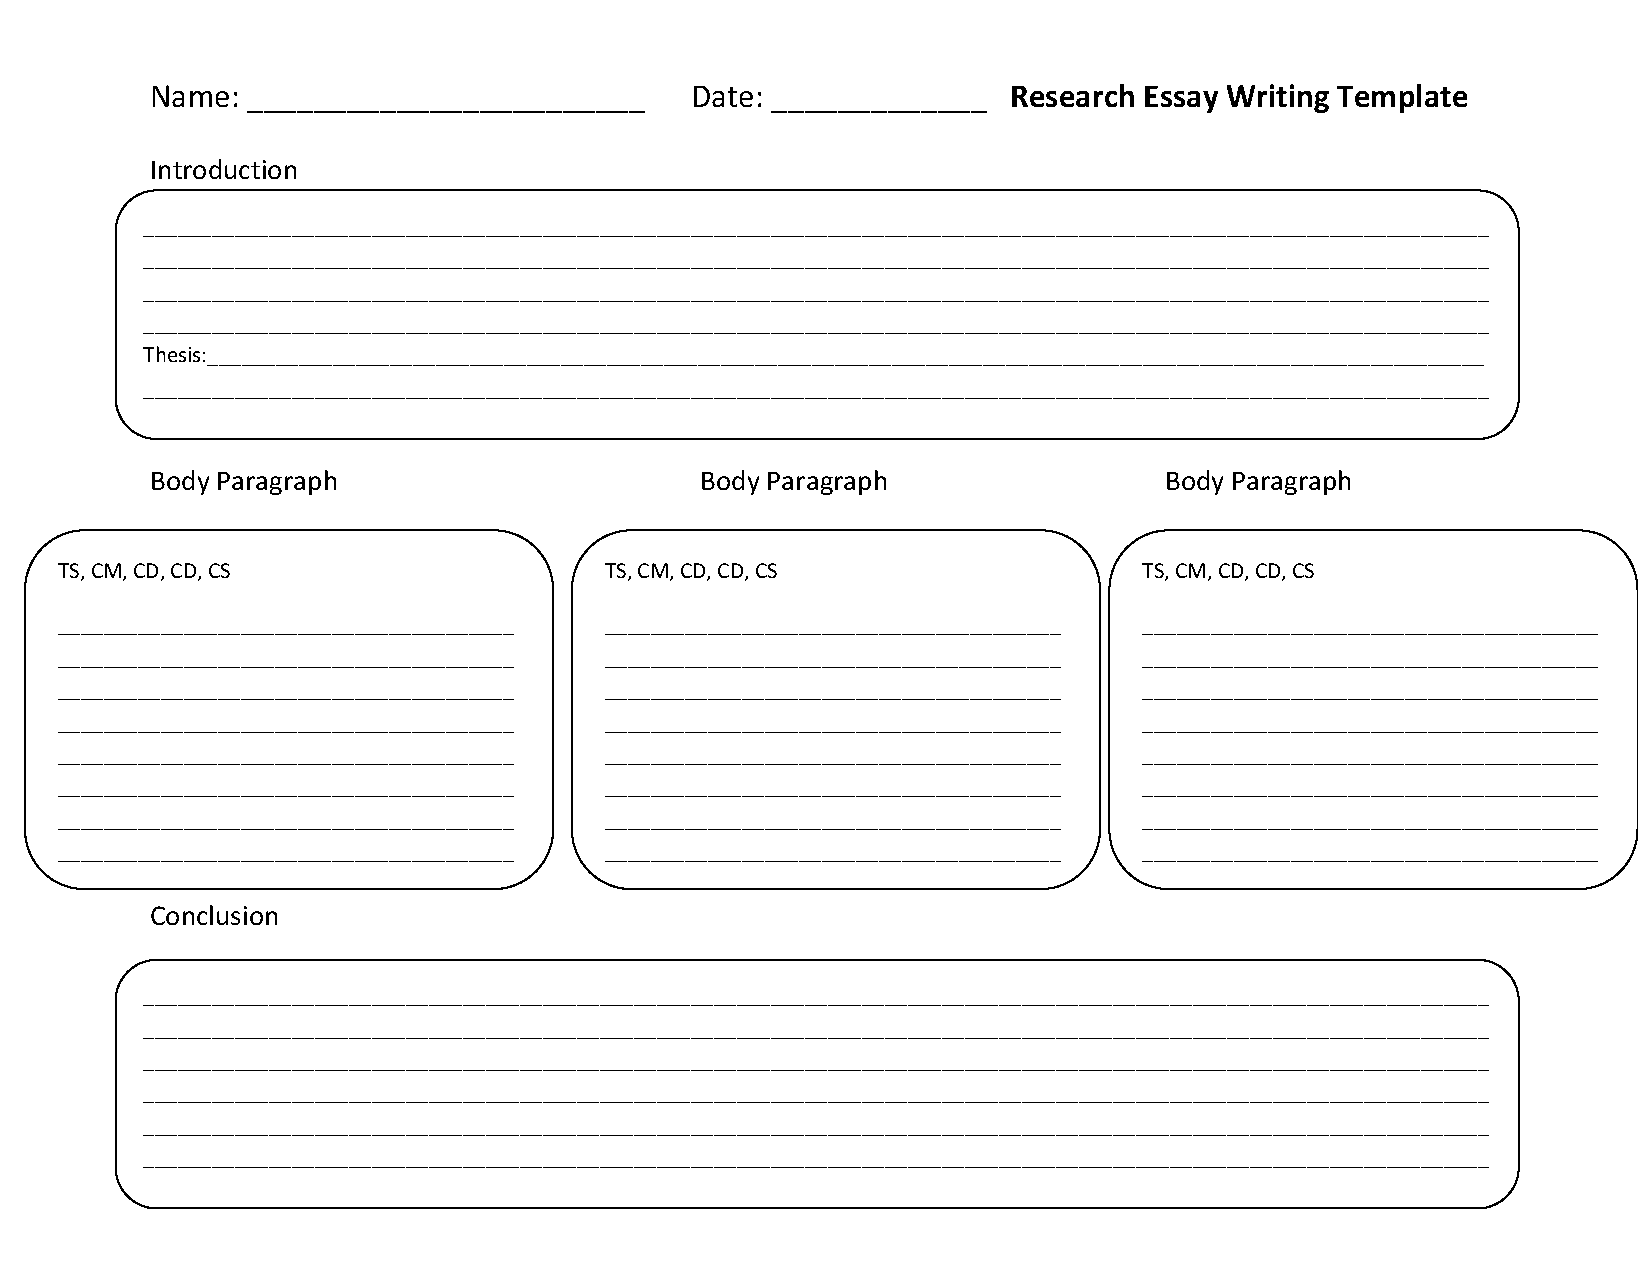 Research Essay Writing Template Worksheet